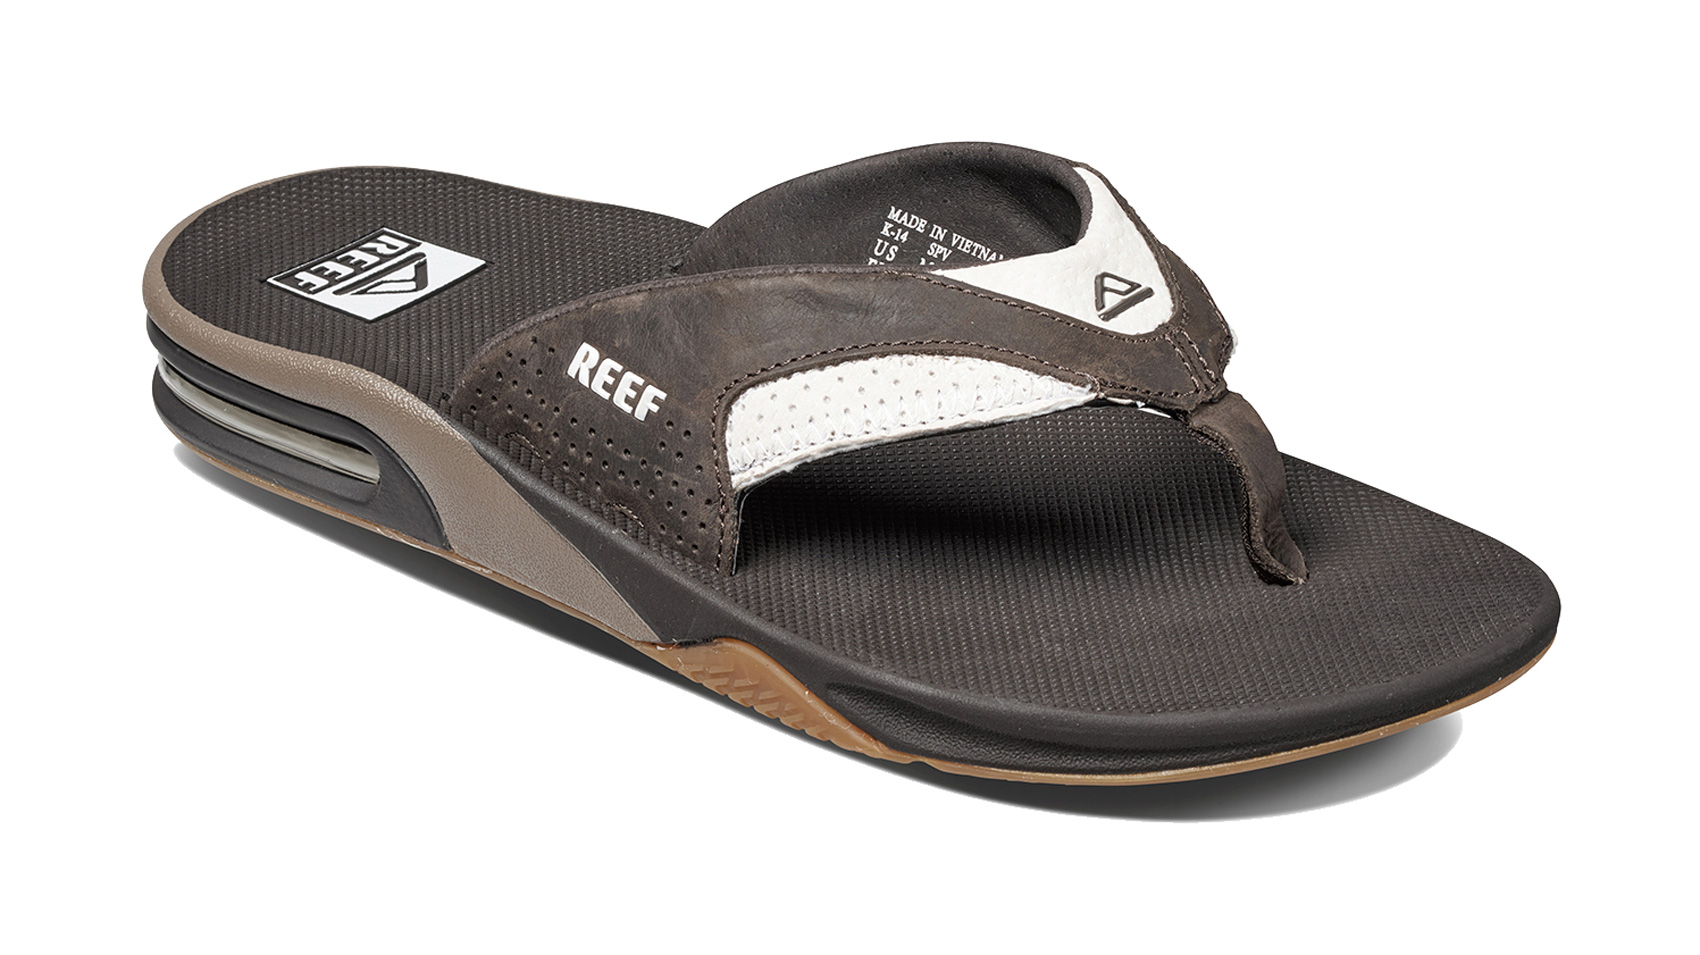 a2f330059ca Reef Leather Fanning Flip Flop